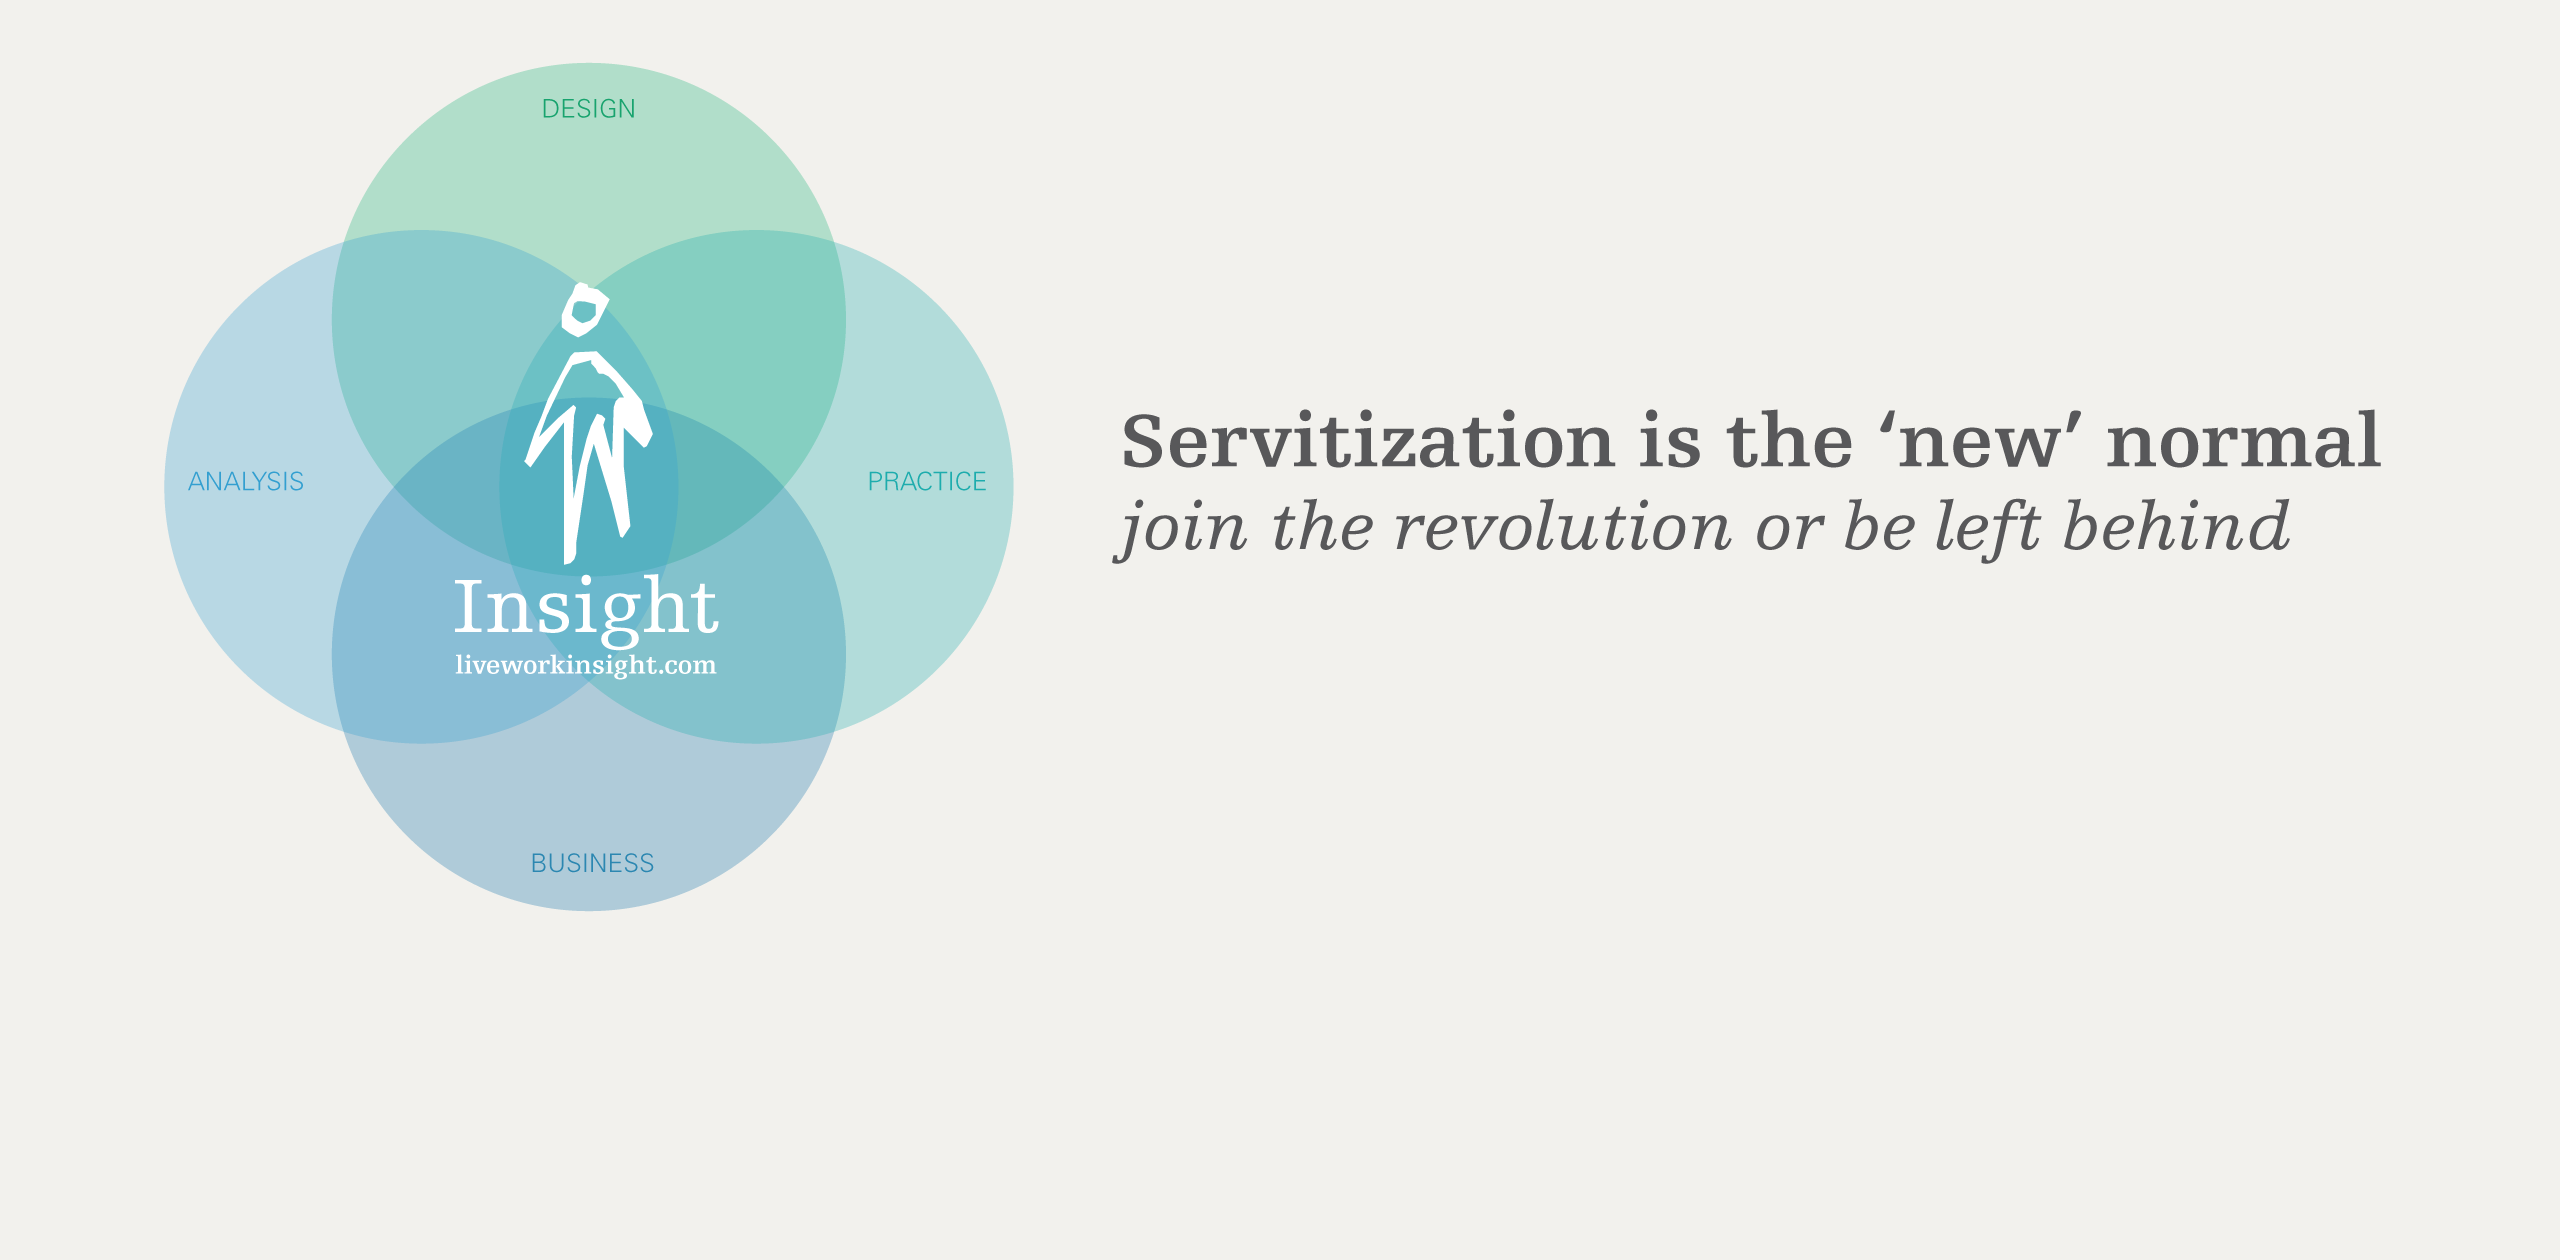 Servitization Round table - join the revolution